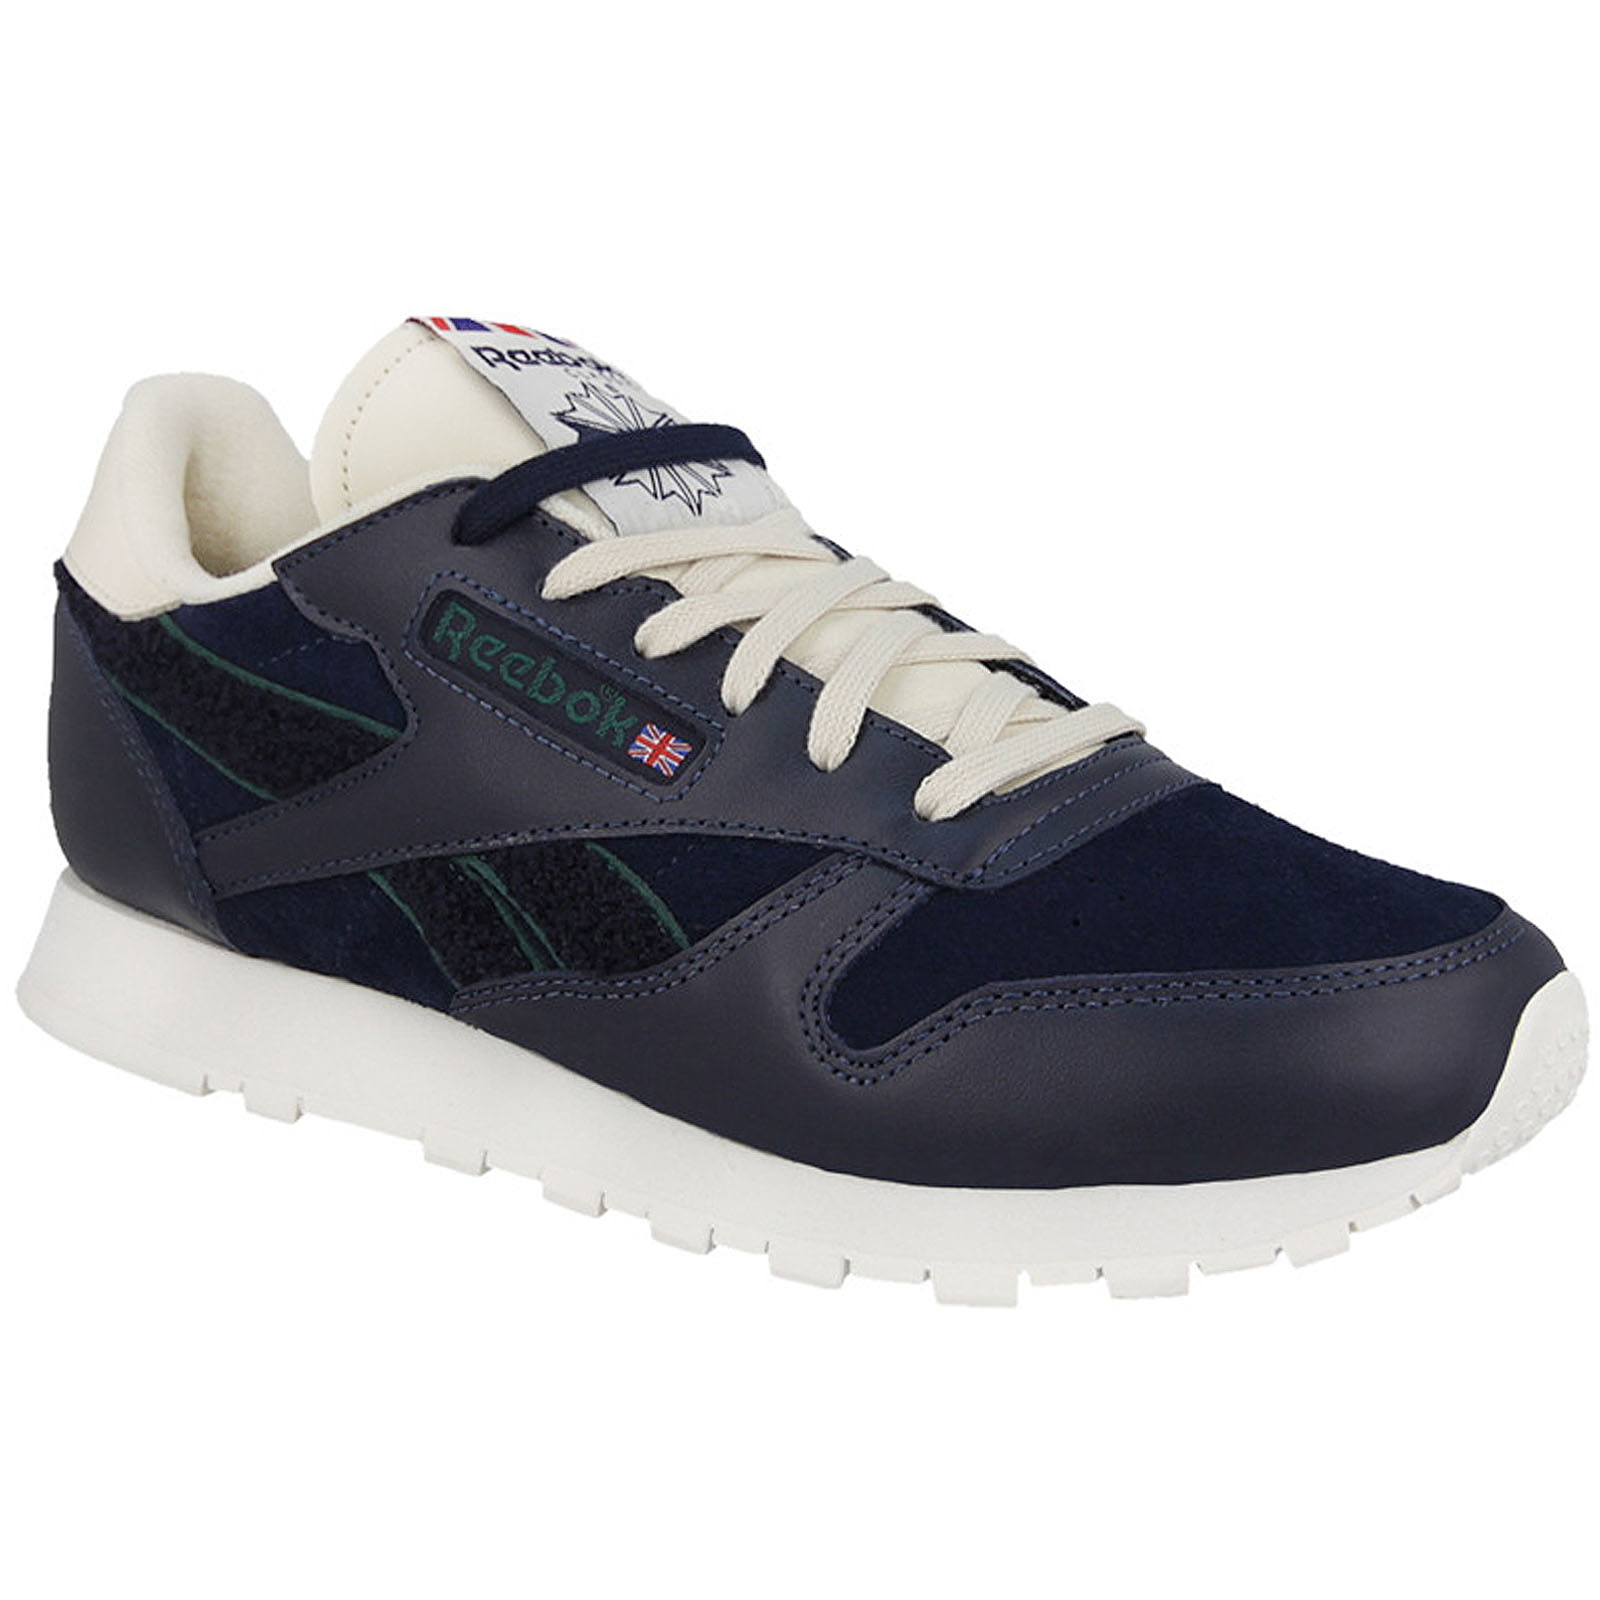 Reebok-Classic-Womens-Leather-Ivy-League-Casual-Fasion-Low-Cut-Trainers-Shoes